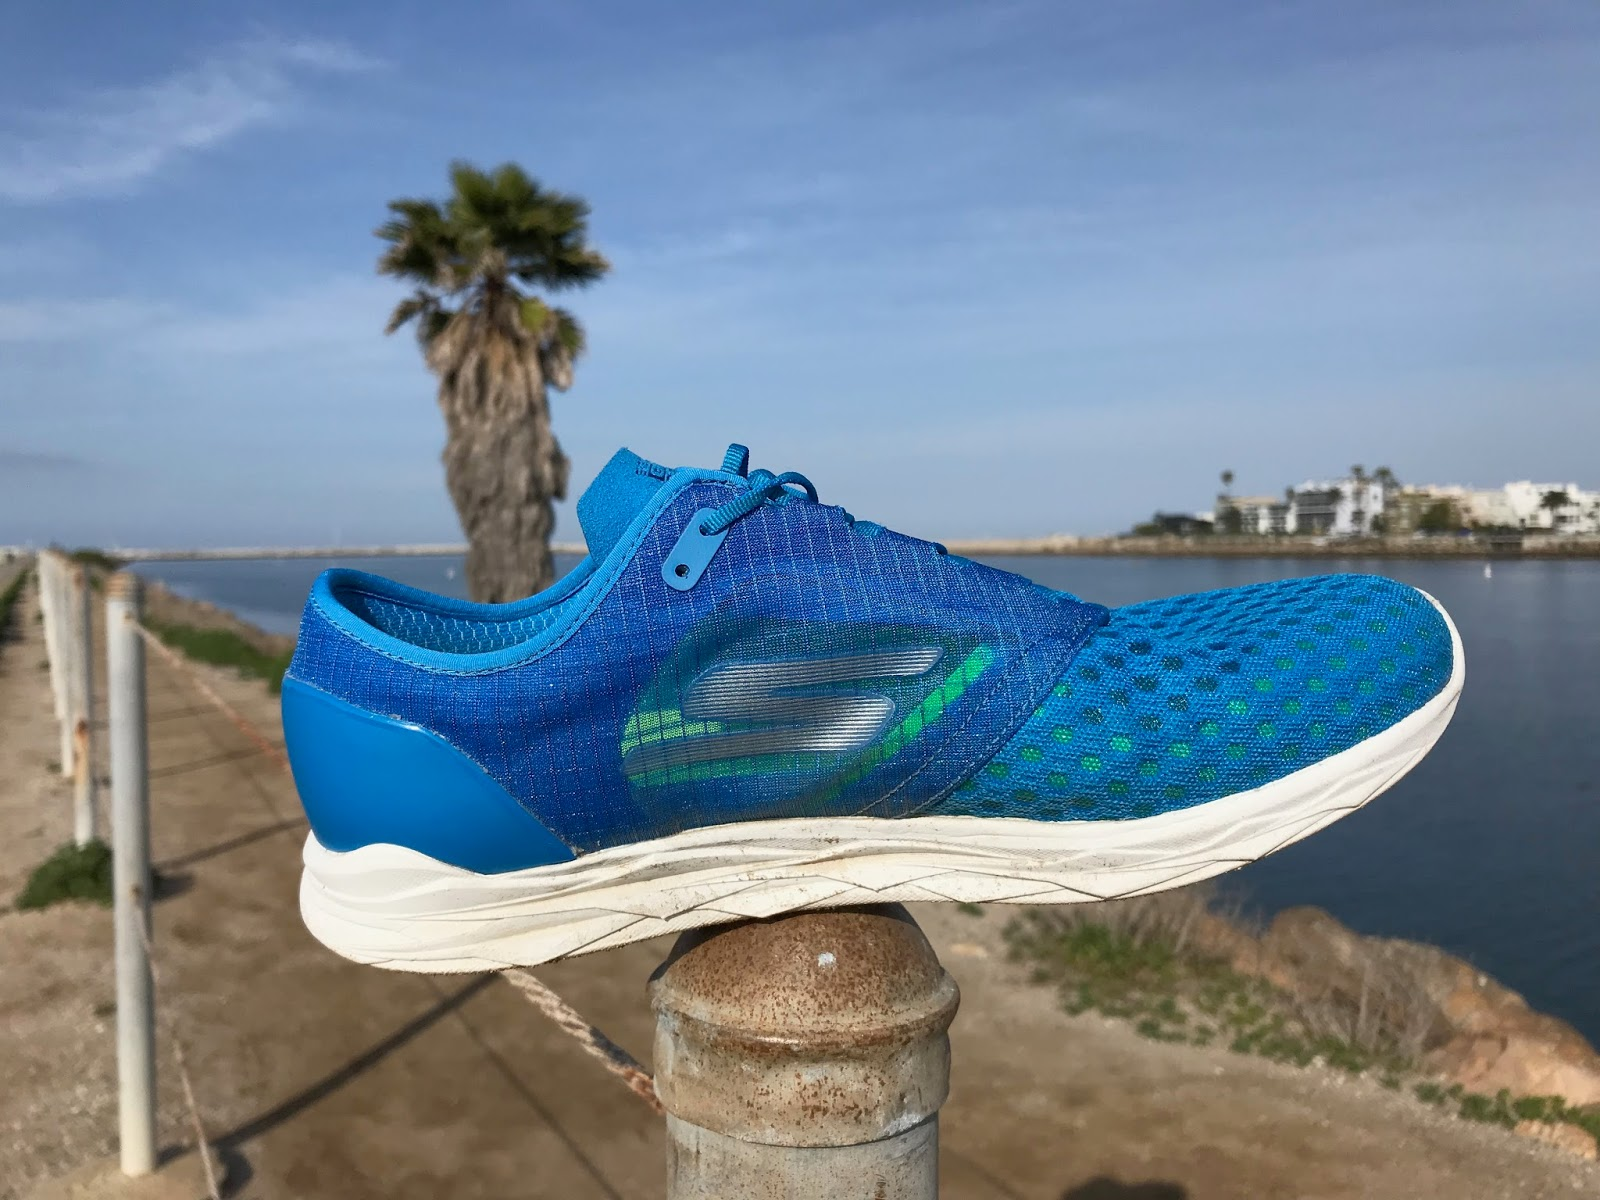 Normal Calor invernadero  Road Trail Run: Skechers Performance GO Meb Speed 5 Review: Smooth. Smooth  and Fast Racing Flat